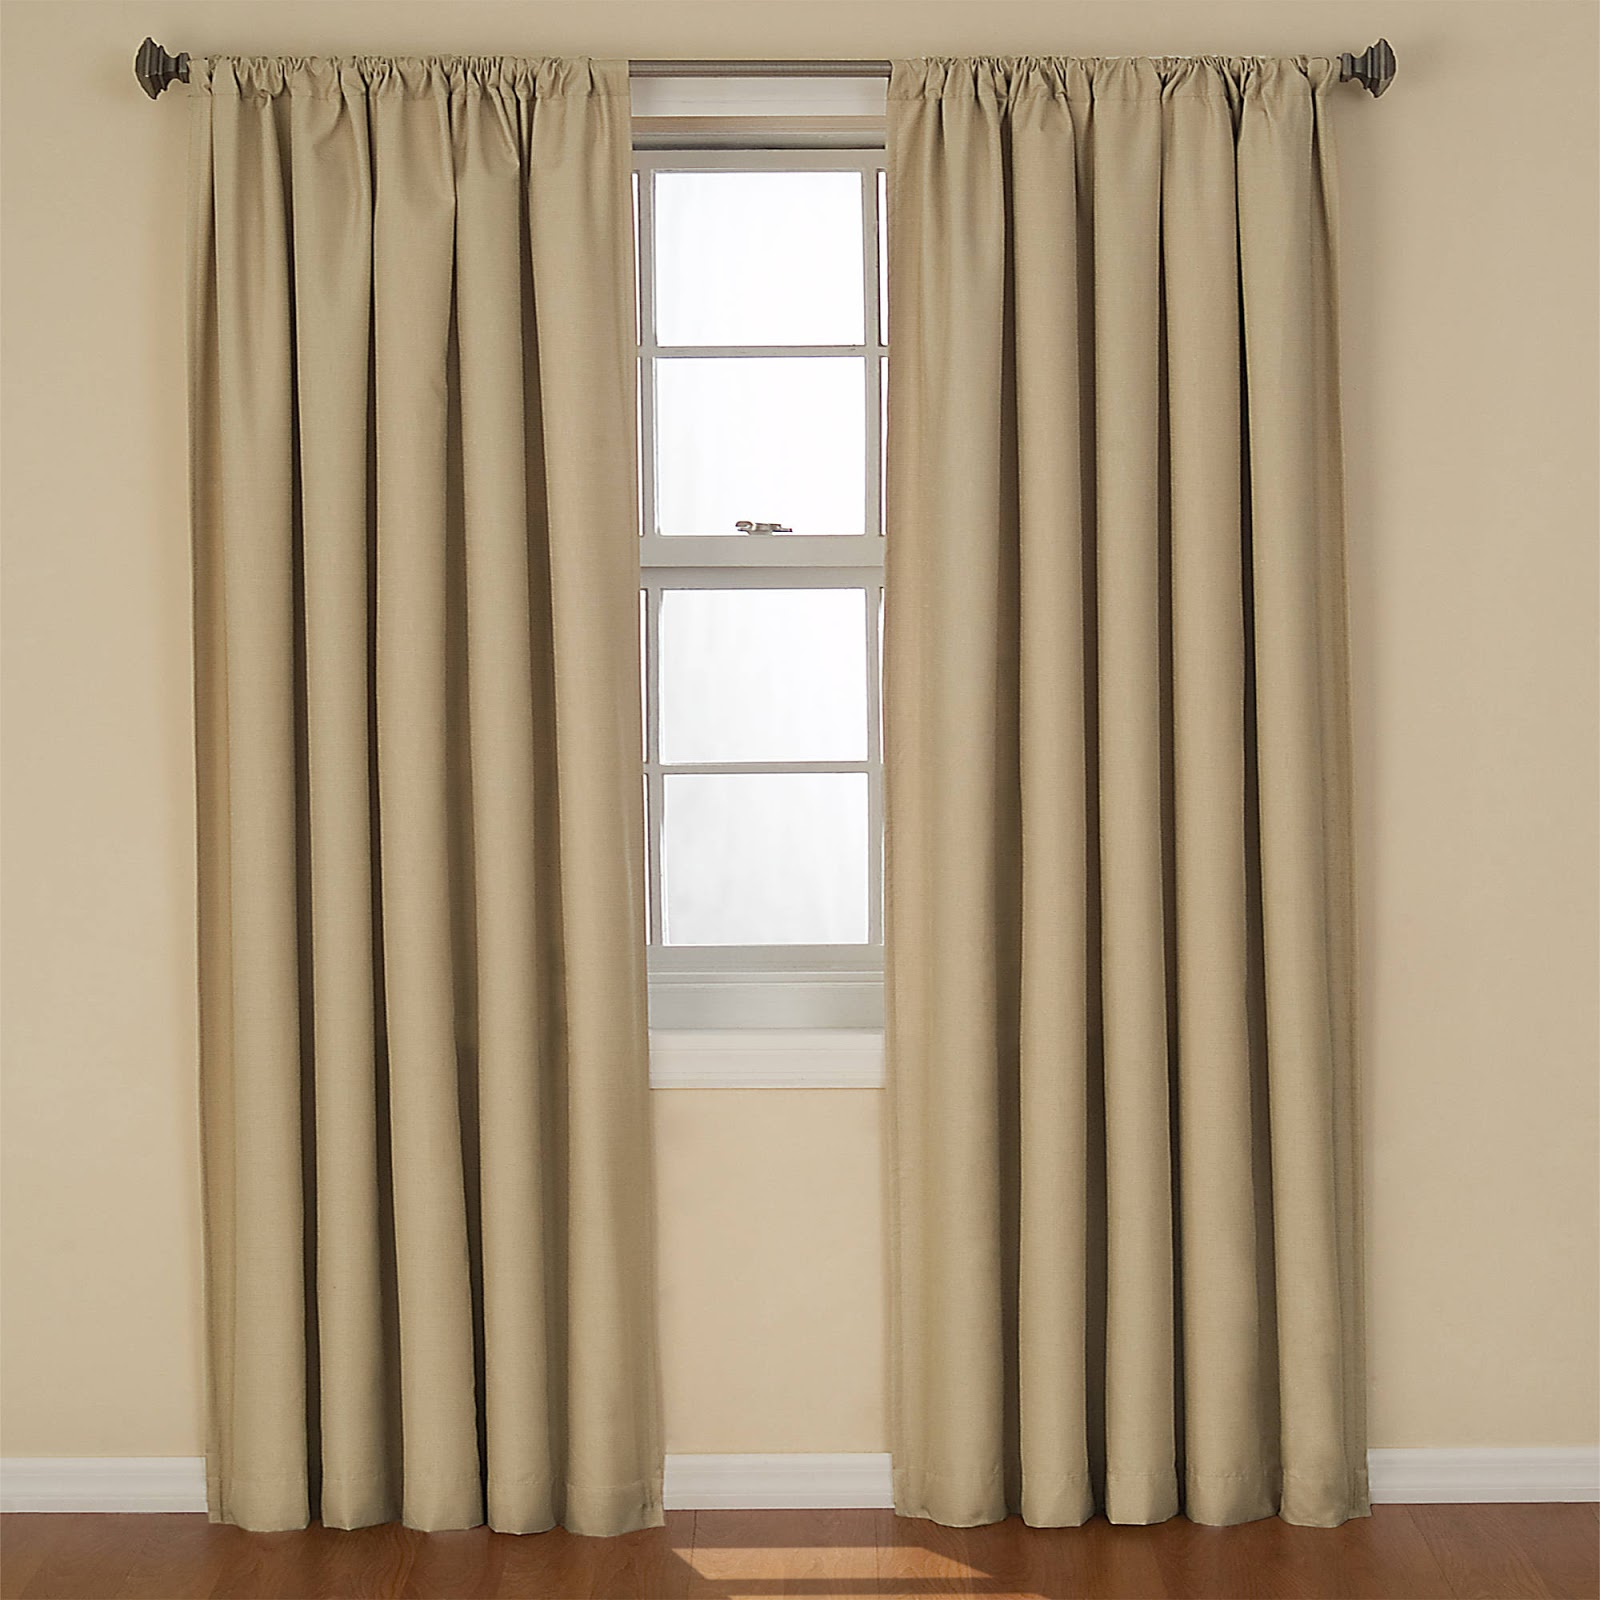 Orange Curtains Walmart Drapes And Kitchen Living Room Patterned